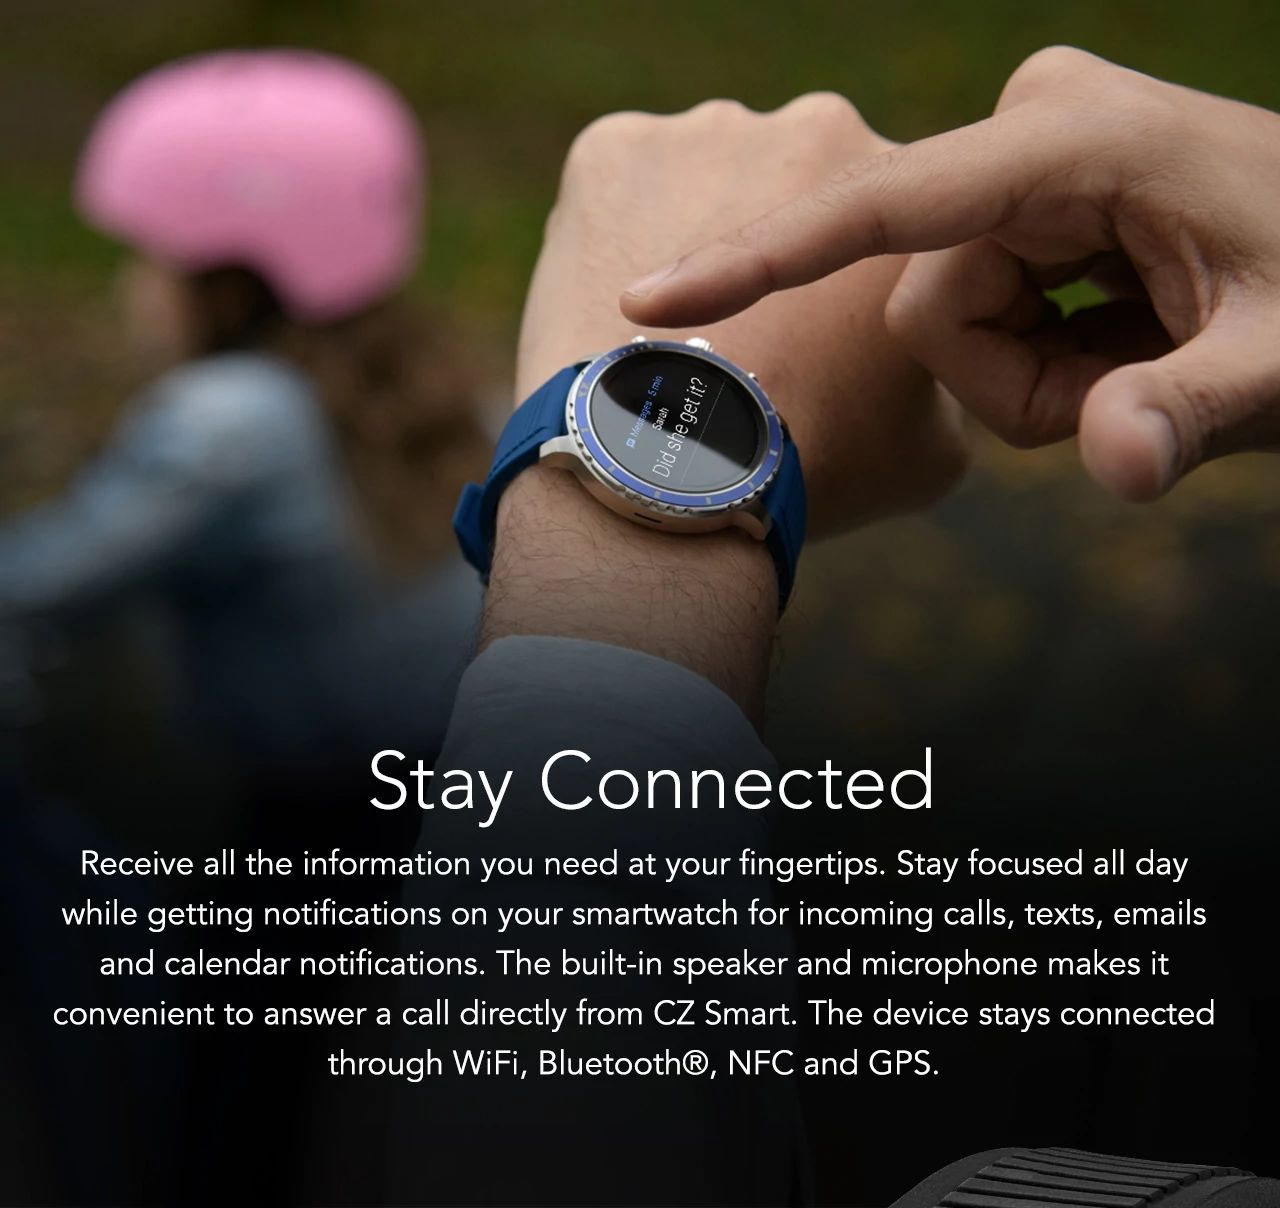 Receive all the information you need at your fingertips. Stay focused all day while getting notifications on your smartwatch for incoming calls, texts, emails and calendar notifications. The built-in speaker and microphone makes it convenient to answer a call directly from CZ Smart. The device stays connected through WiFi, Bluetooth®, NFC and GPS.